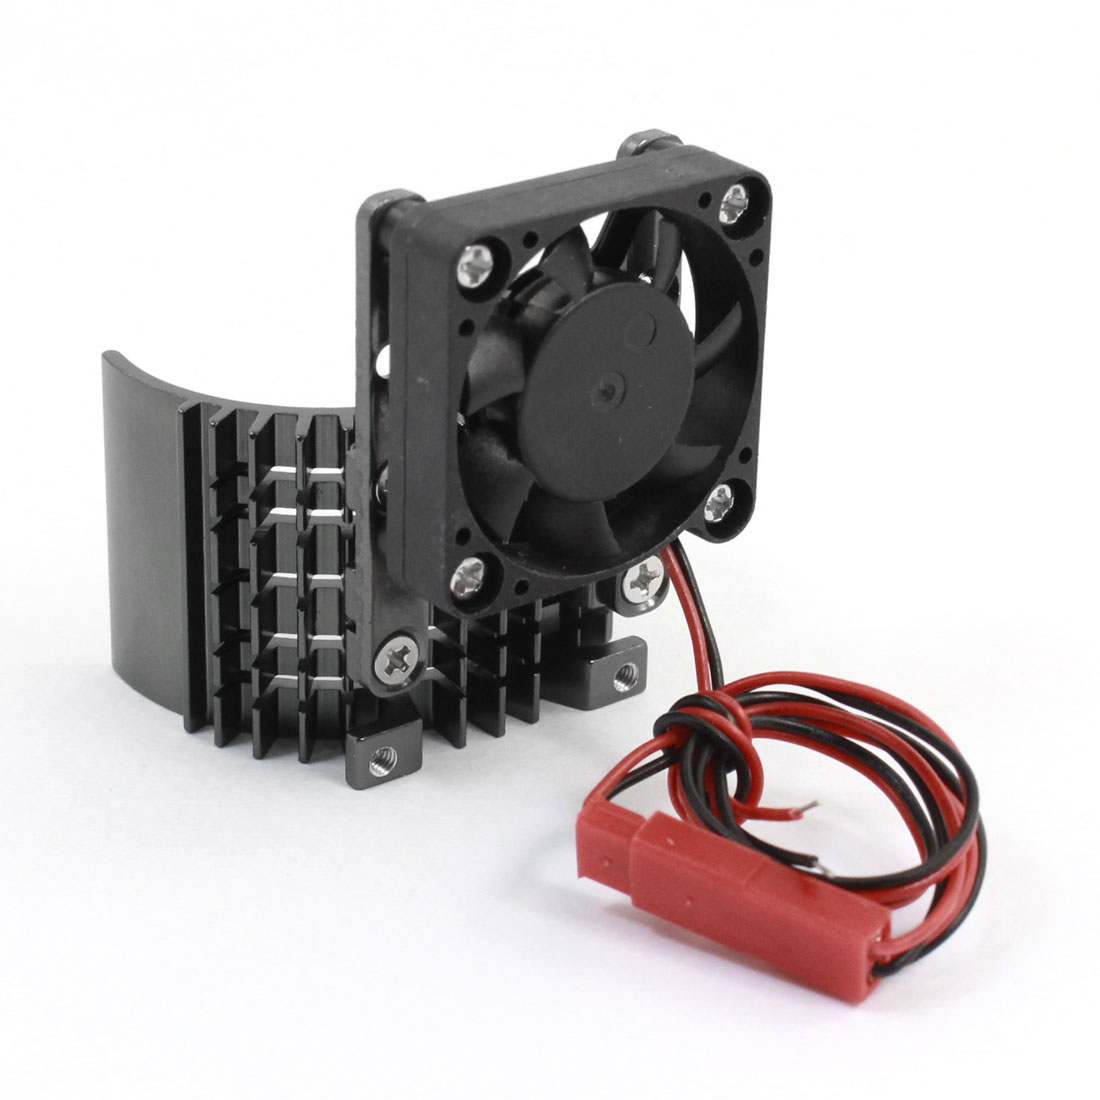 Black Aluminum Alloy Heatsink w 5V Cooling Fan for 1/10 Car 540 3650 Size Motor